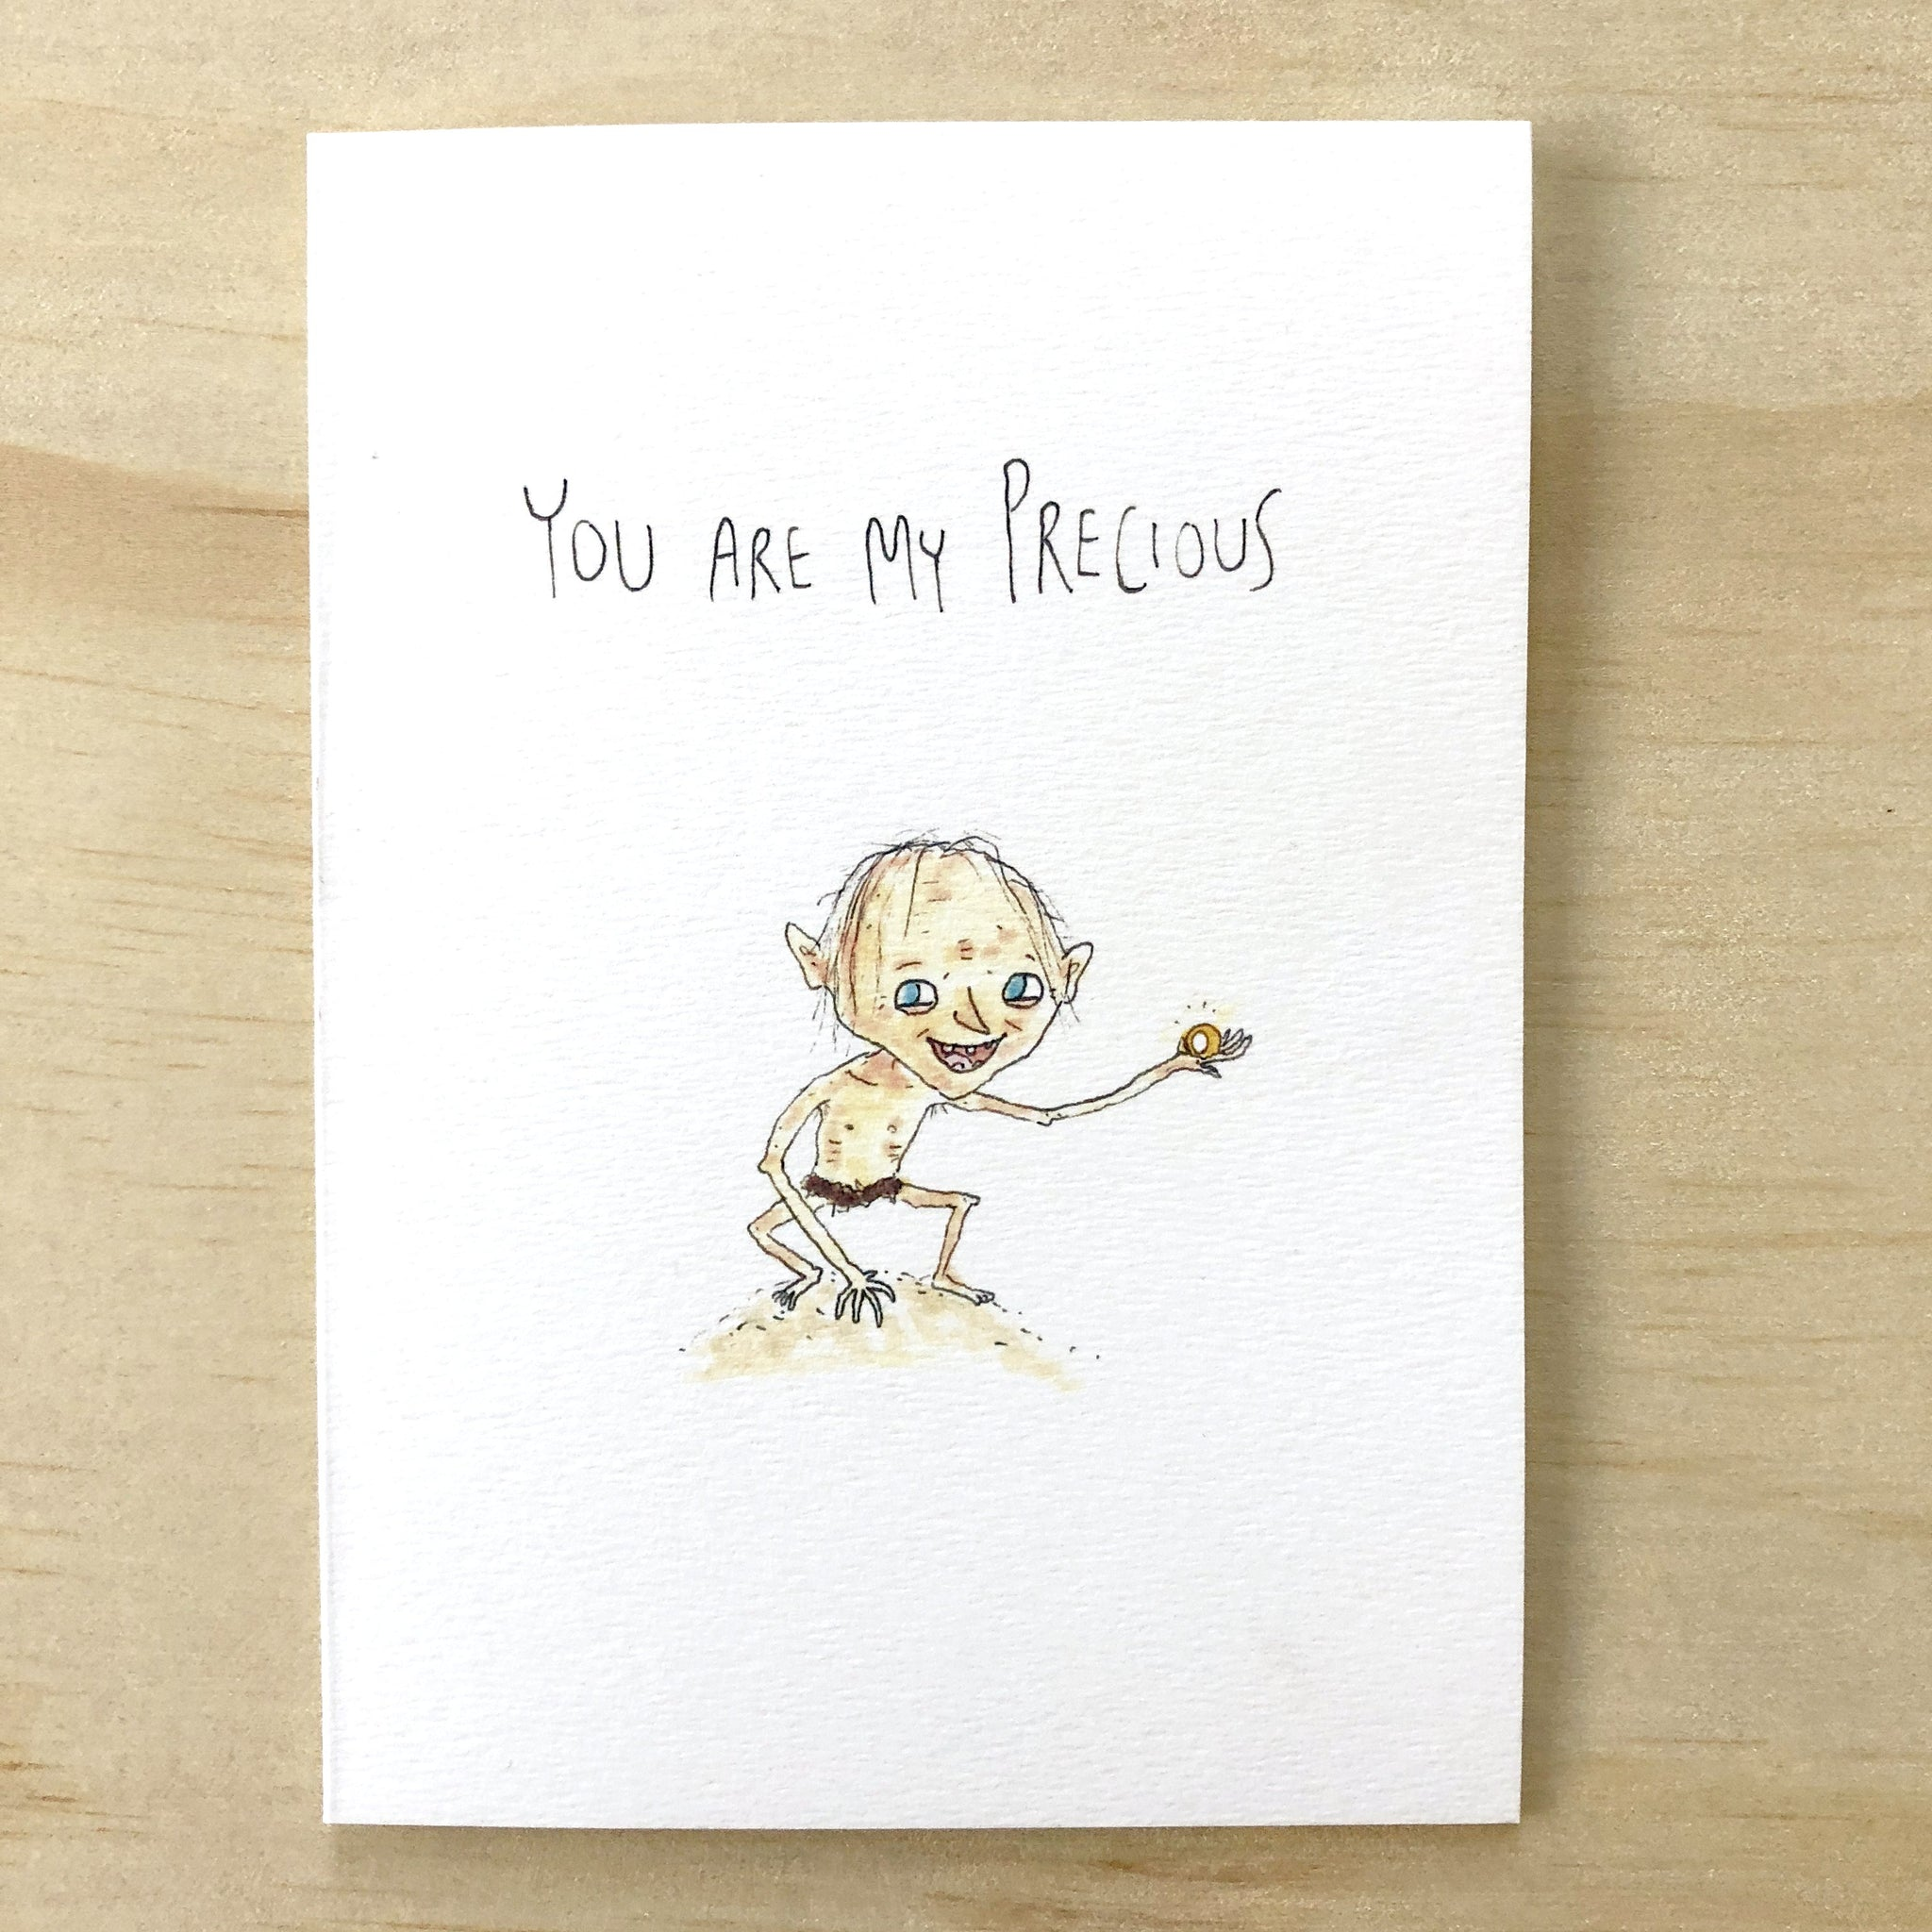 You Are My Precious - Well Drawn